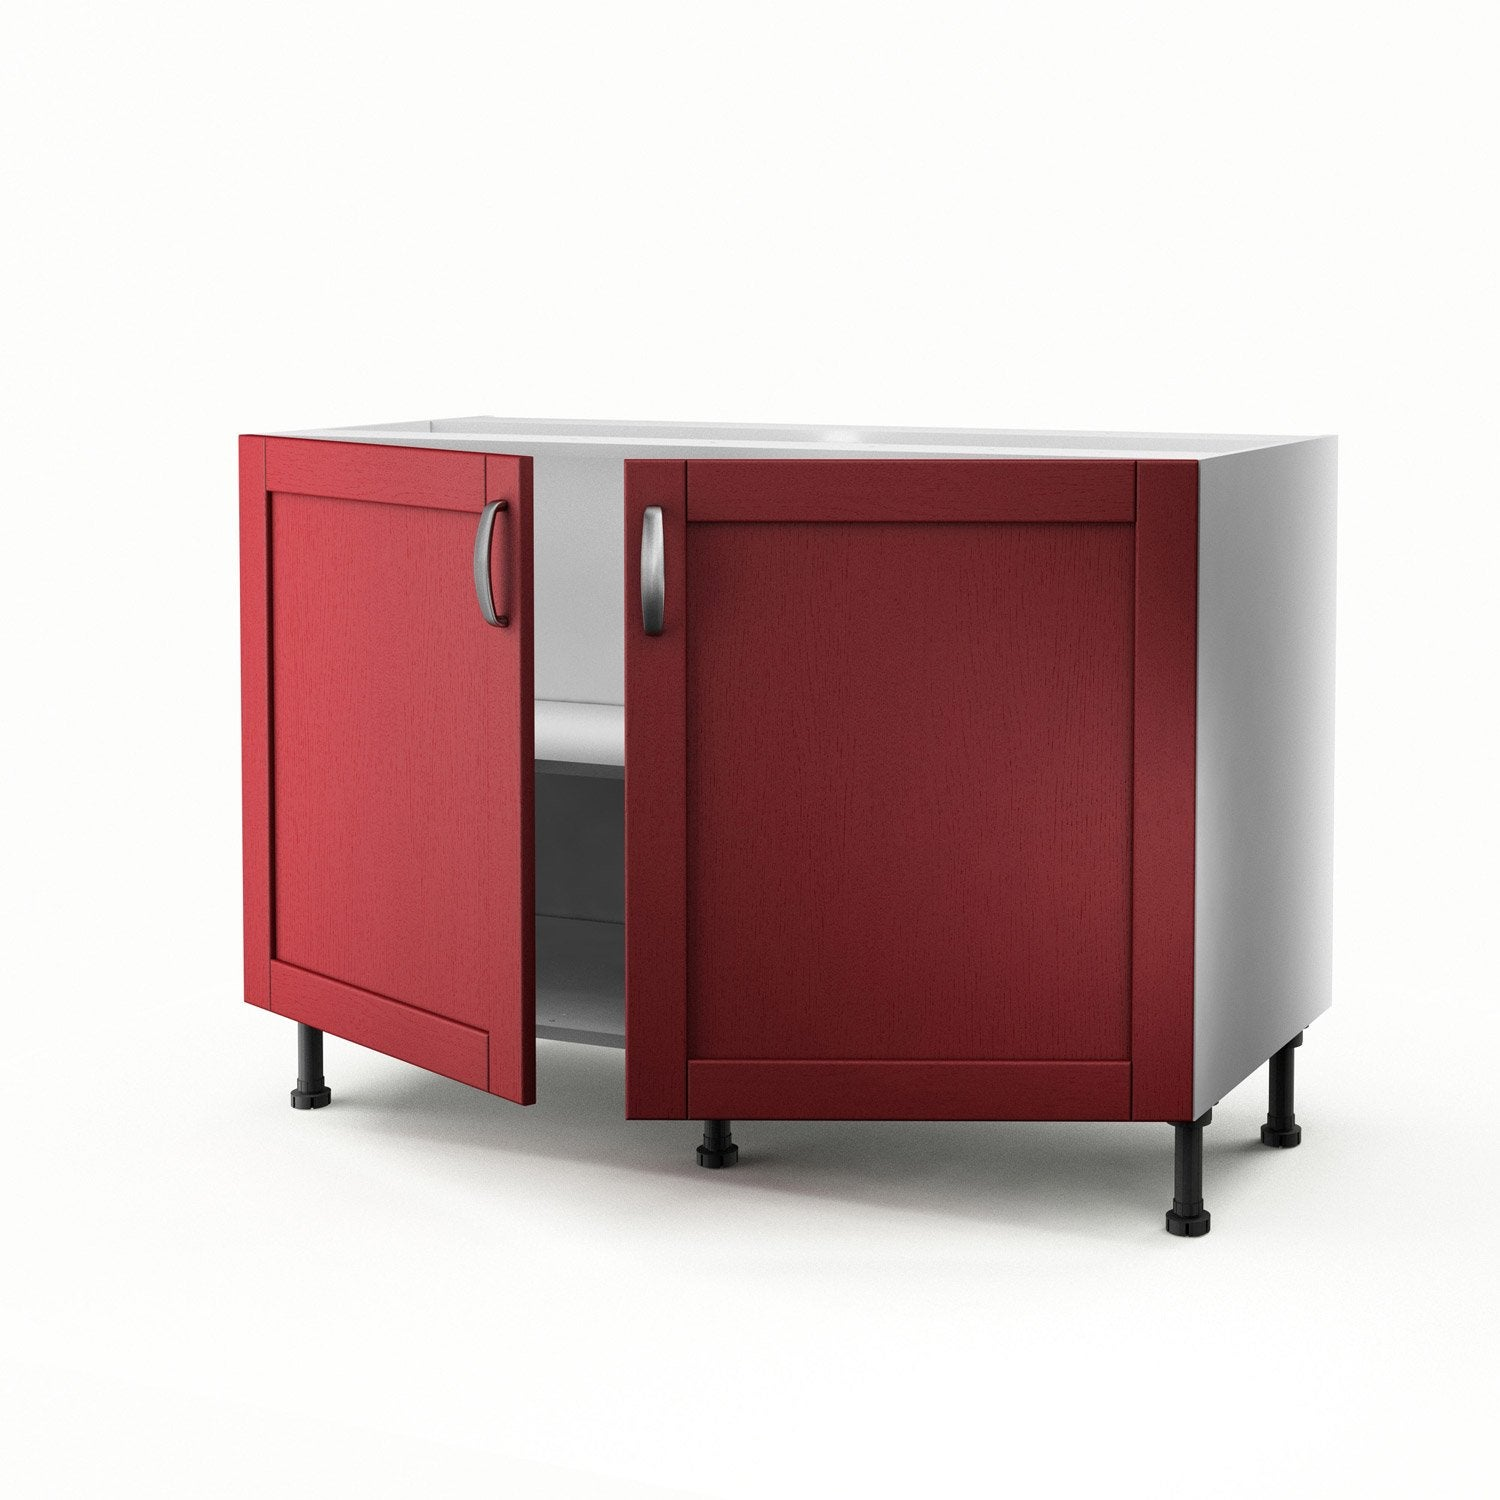 meuble de cuisine sous vier rouge 2 portes rubis x x cm leroy merlin. Black Bedroom Furniture Sets. Home Design Ideas